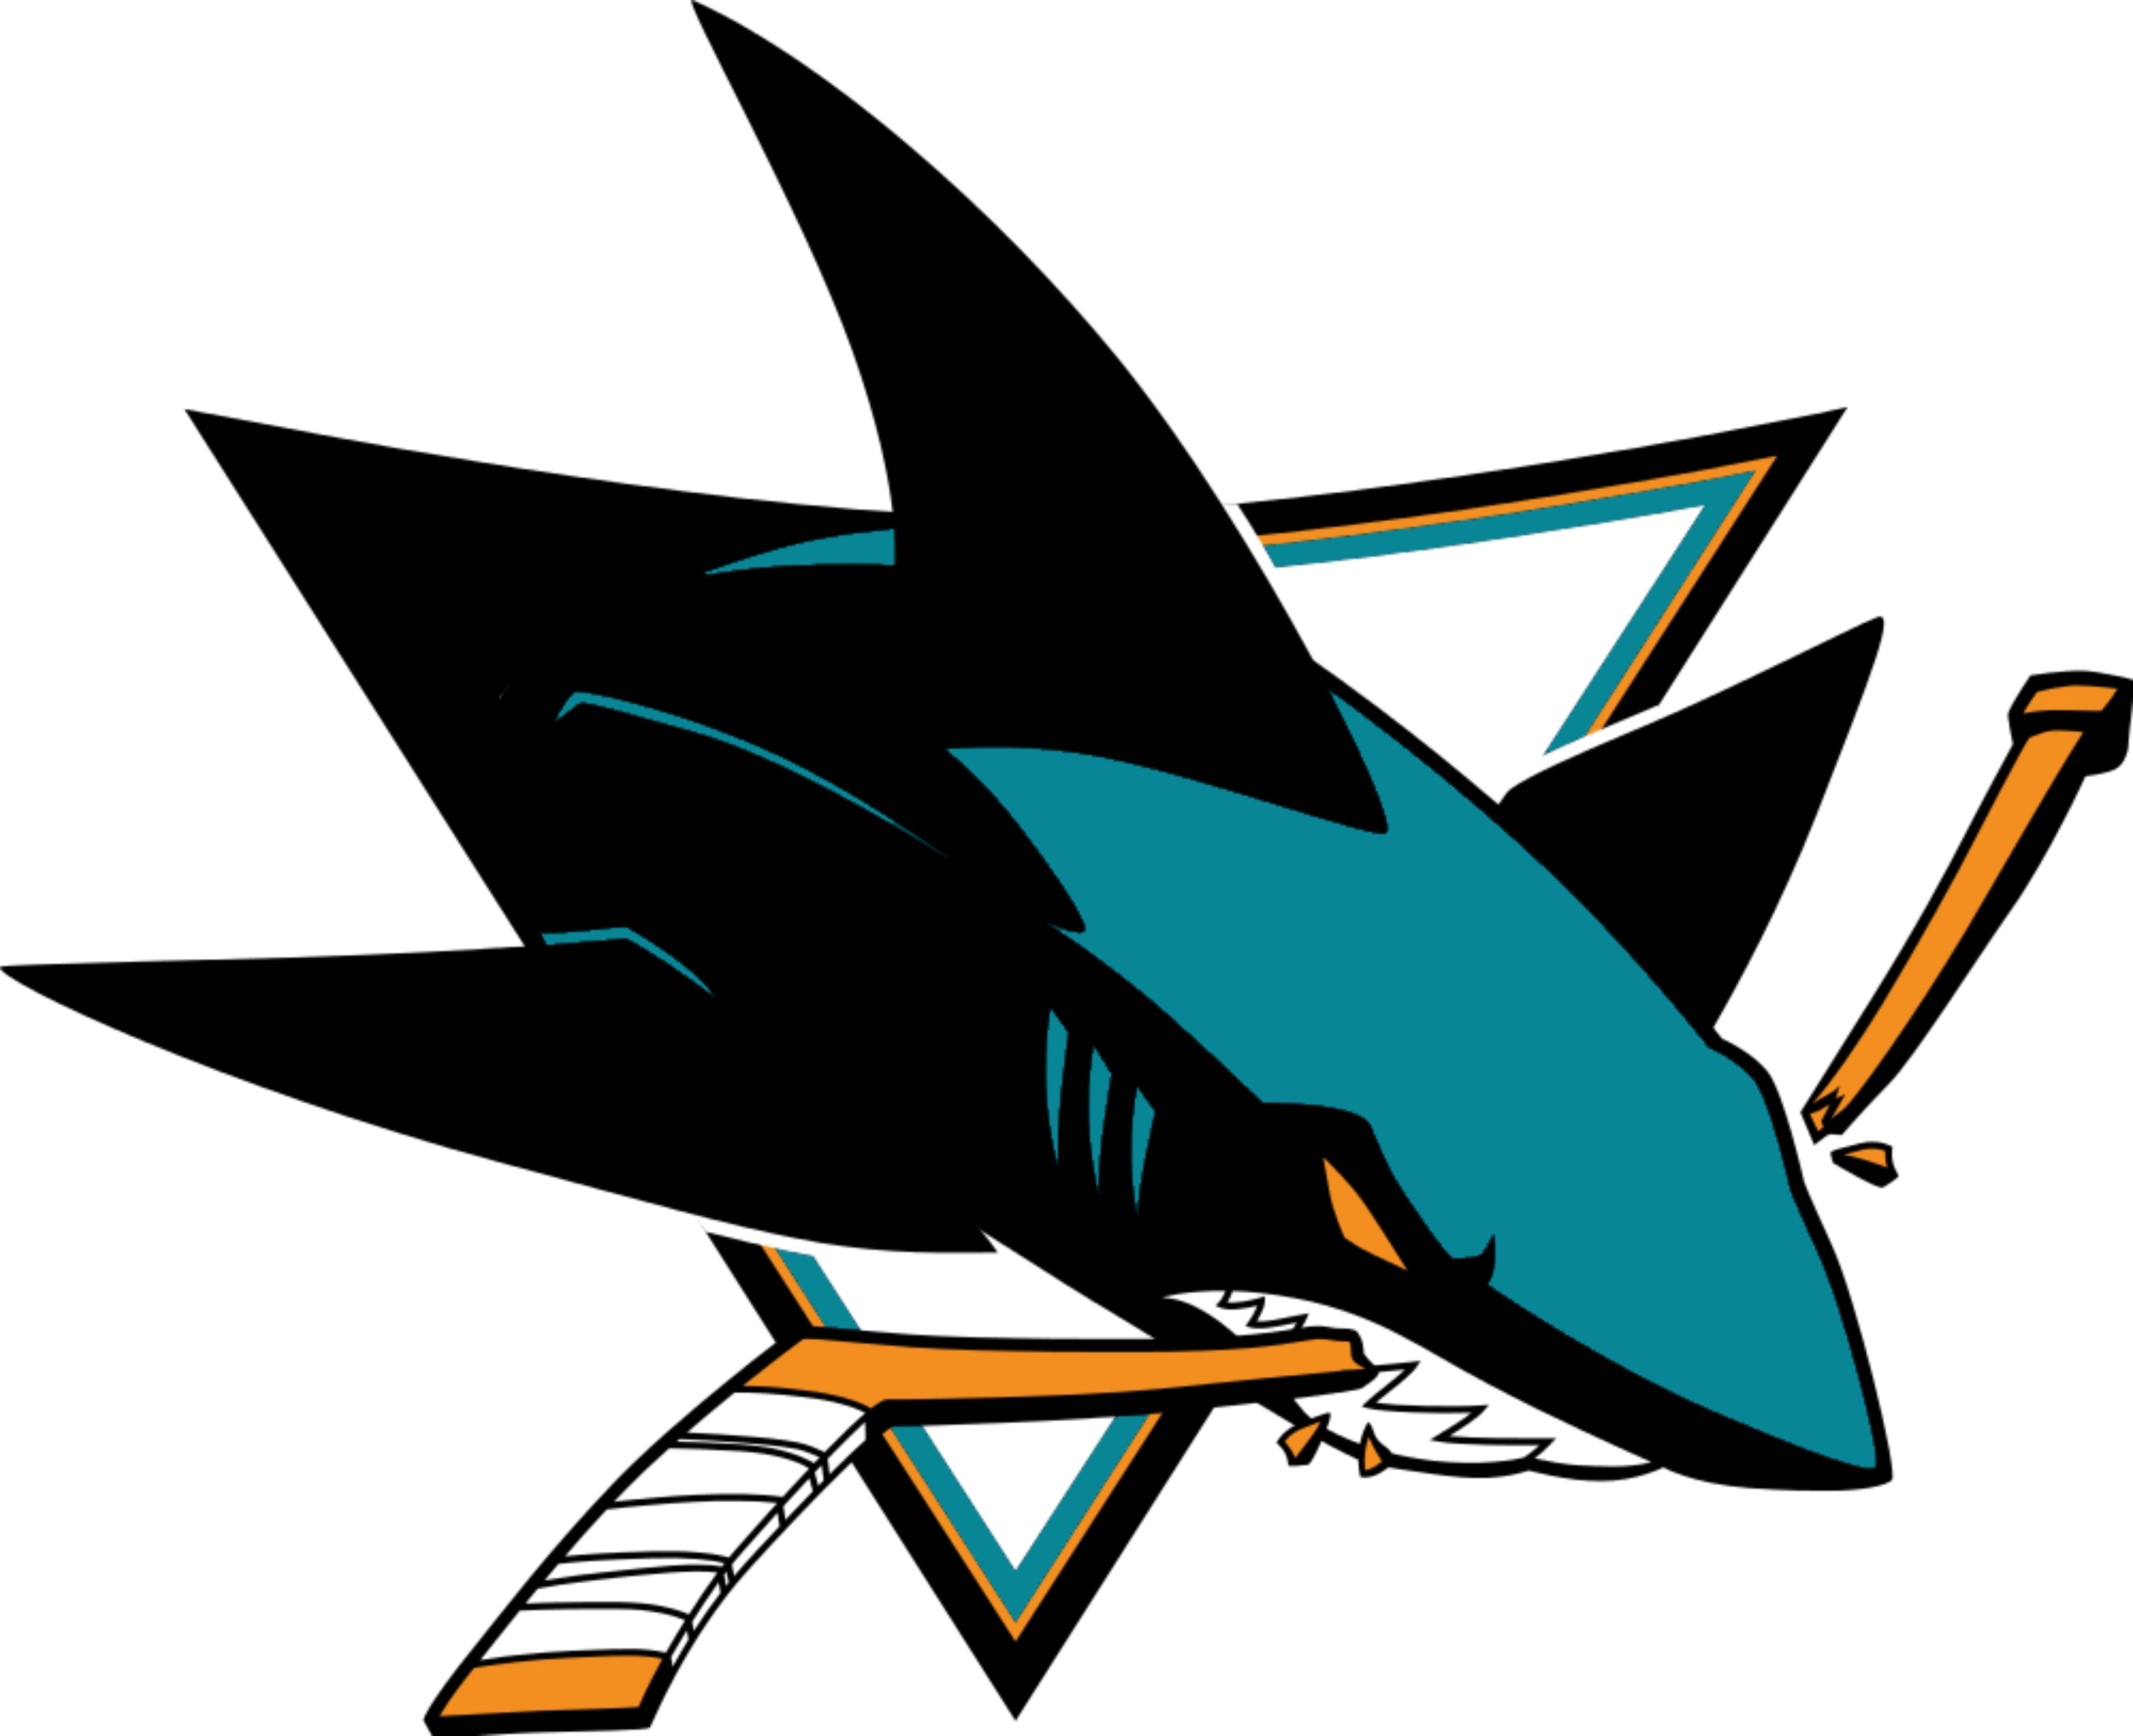 San jose sharks logo png. Logos download logotype emblem